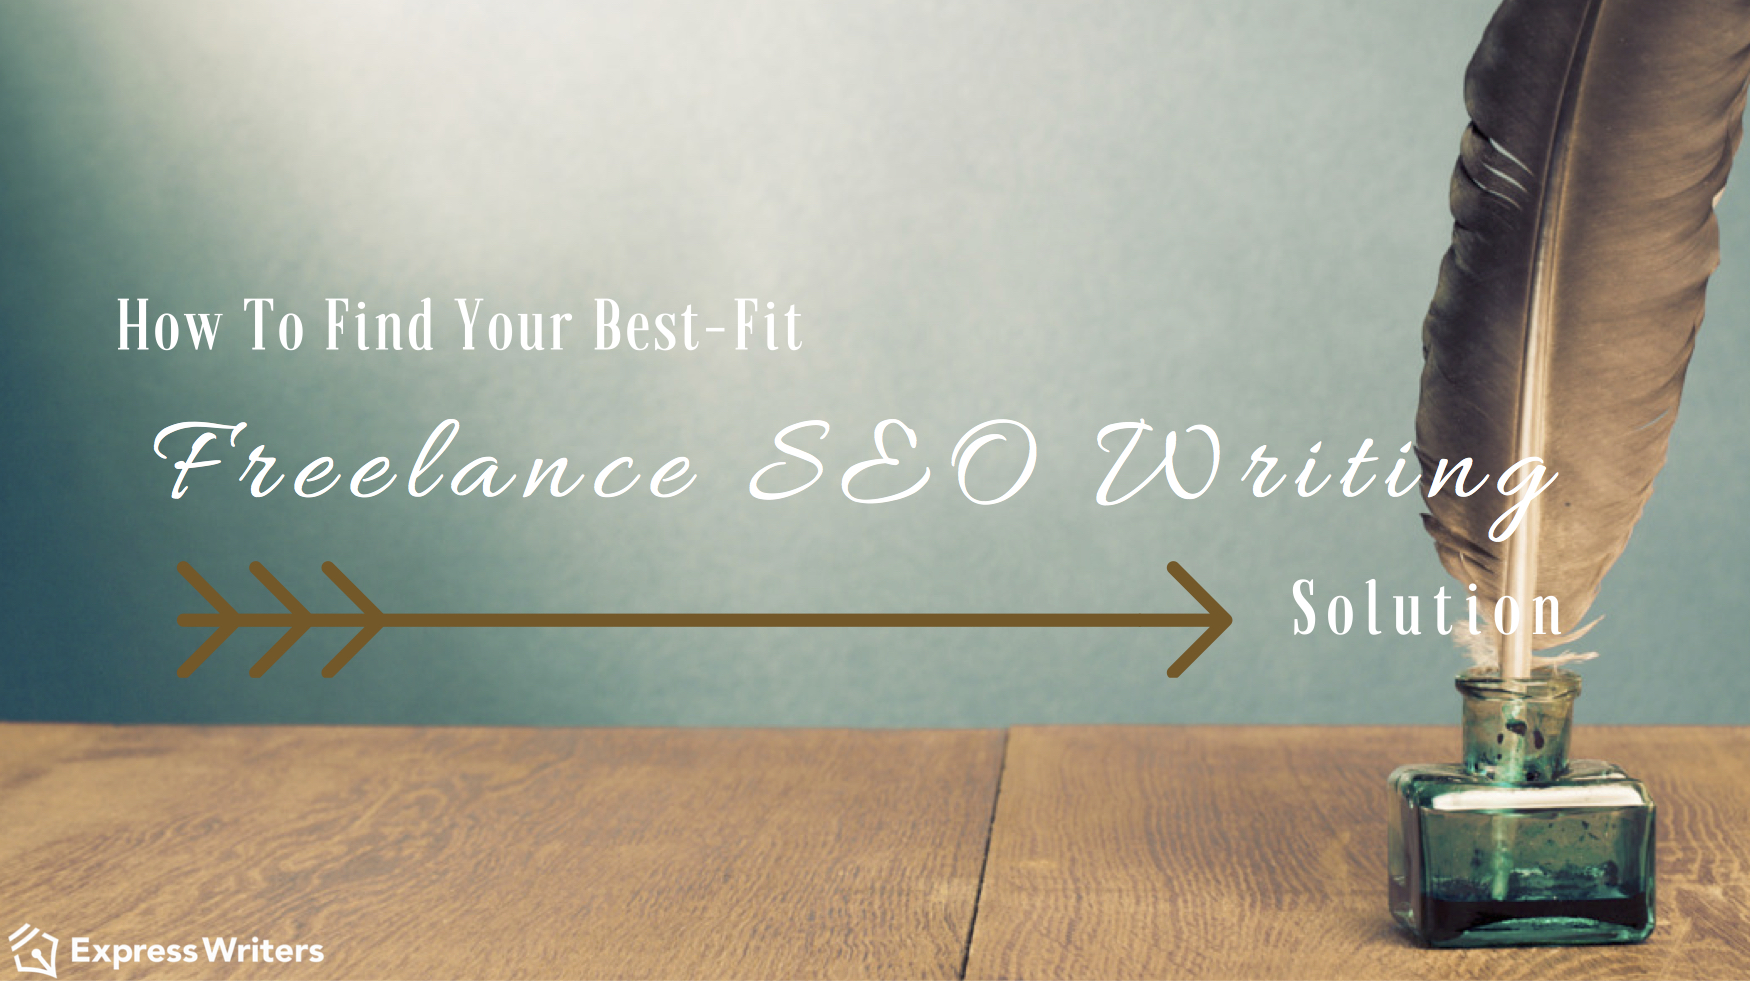 Seo content writing services freelance